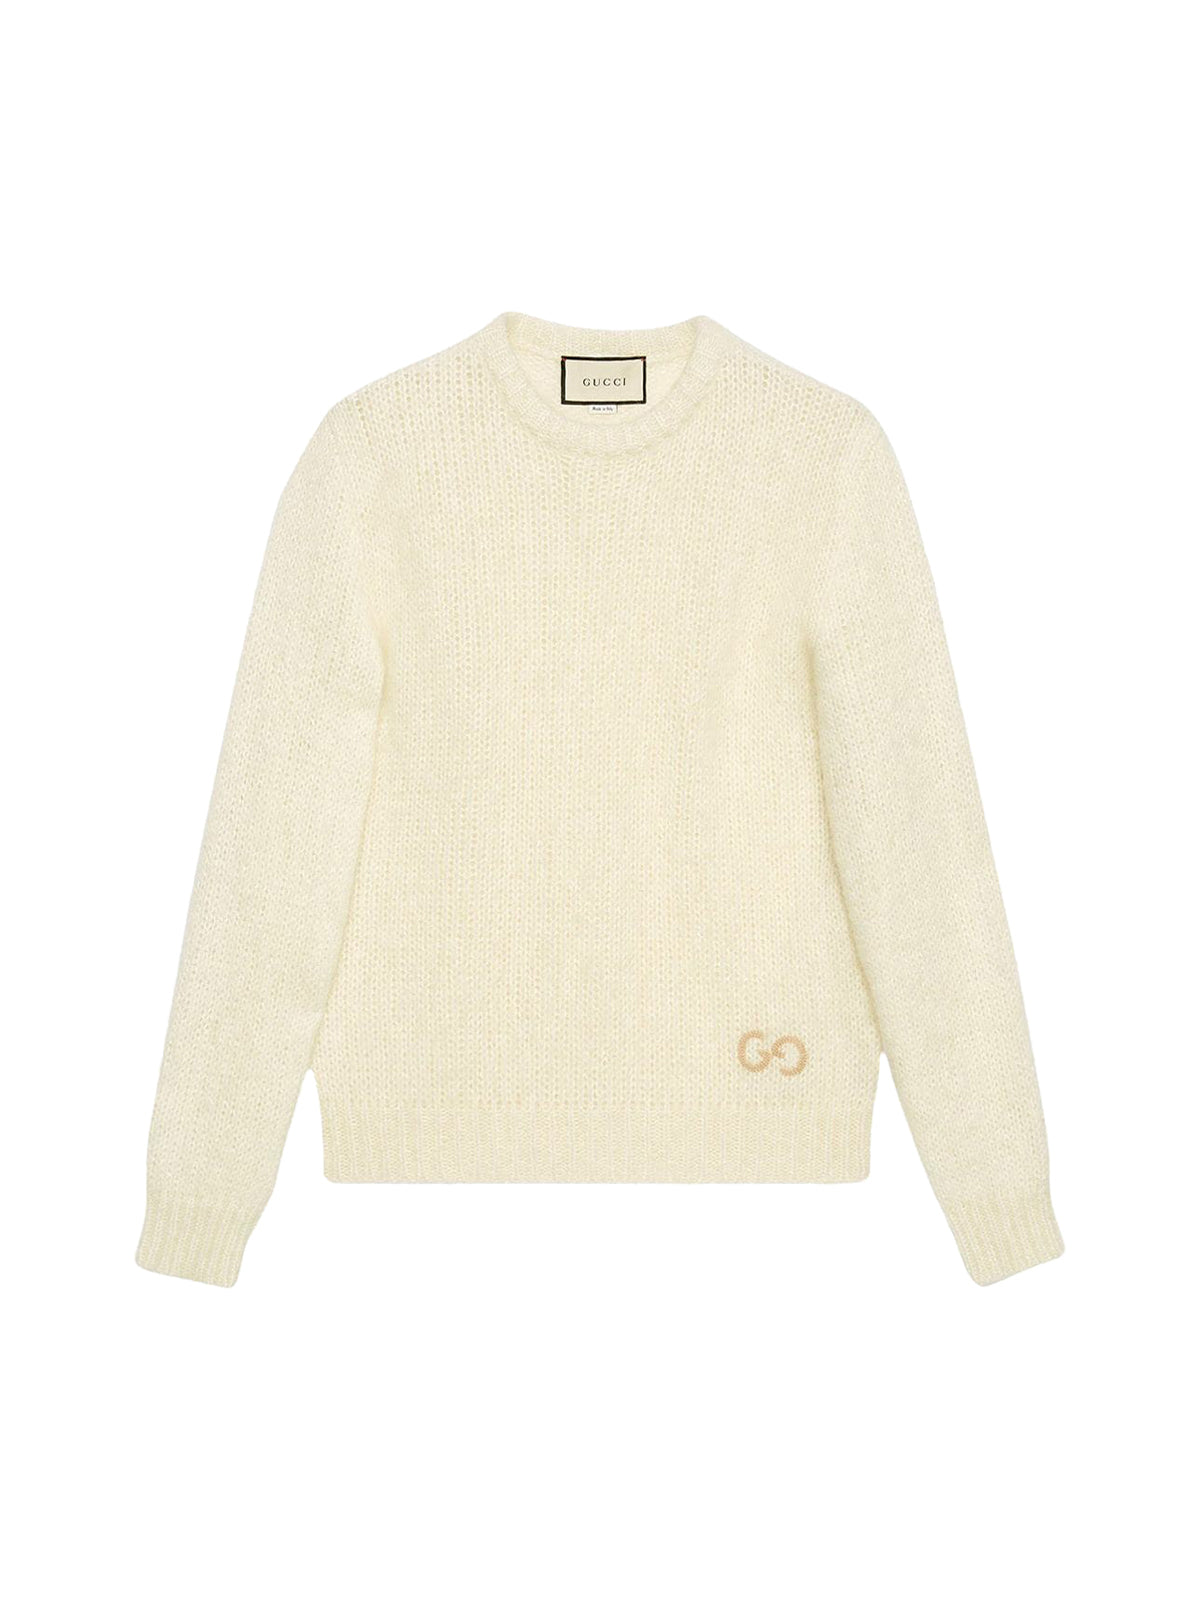 GG embroidery knitted jumper